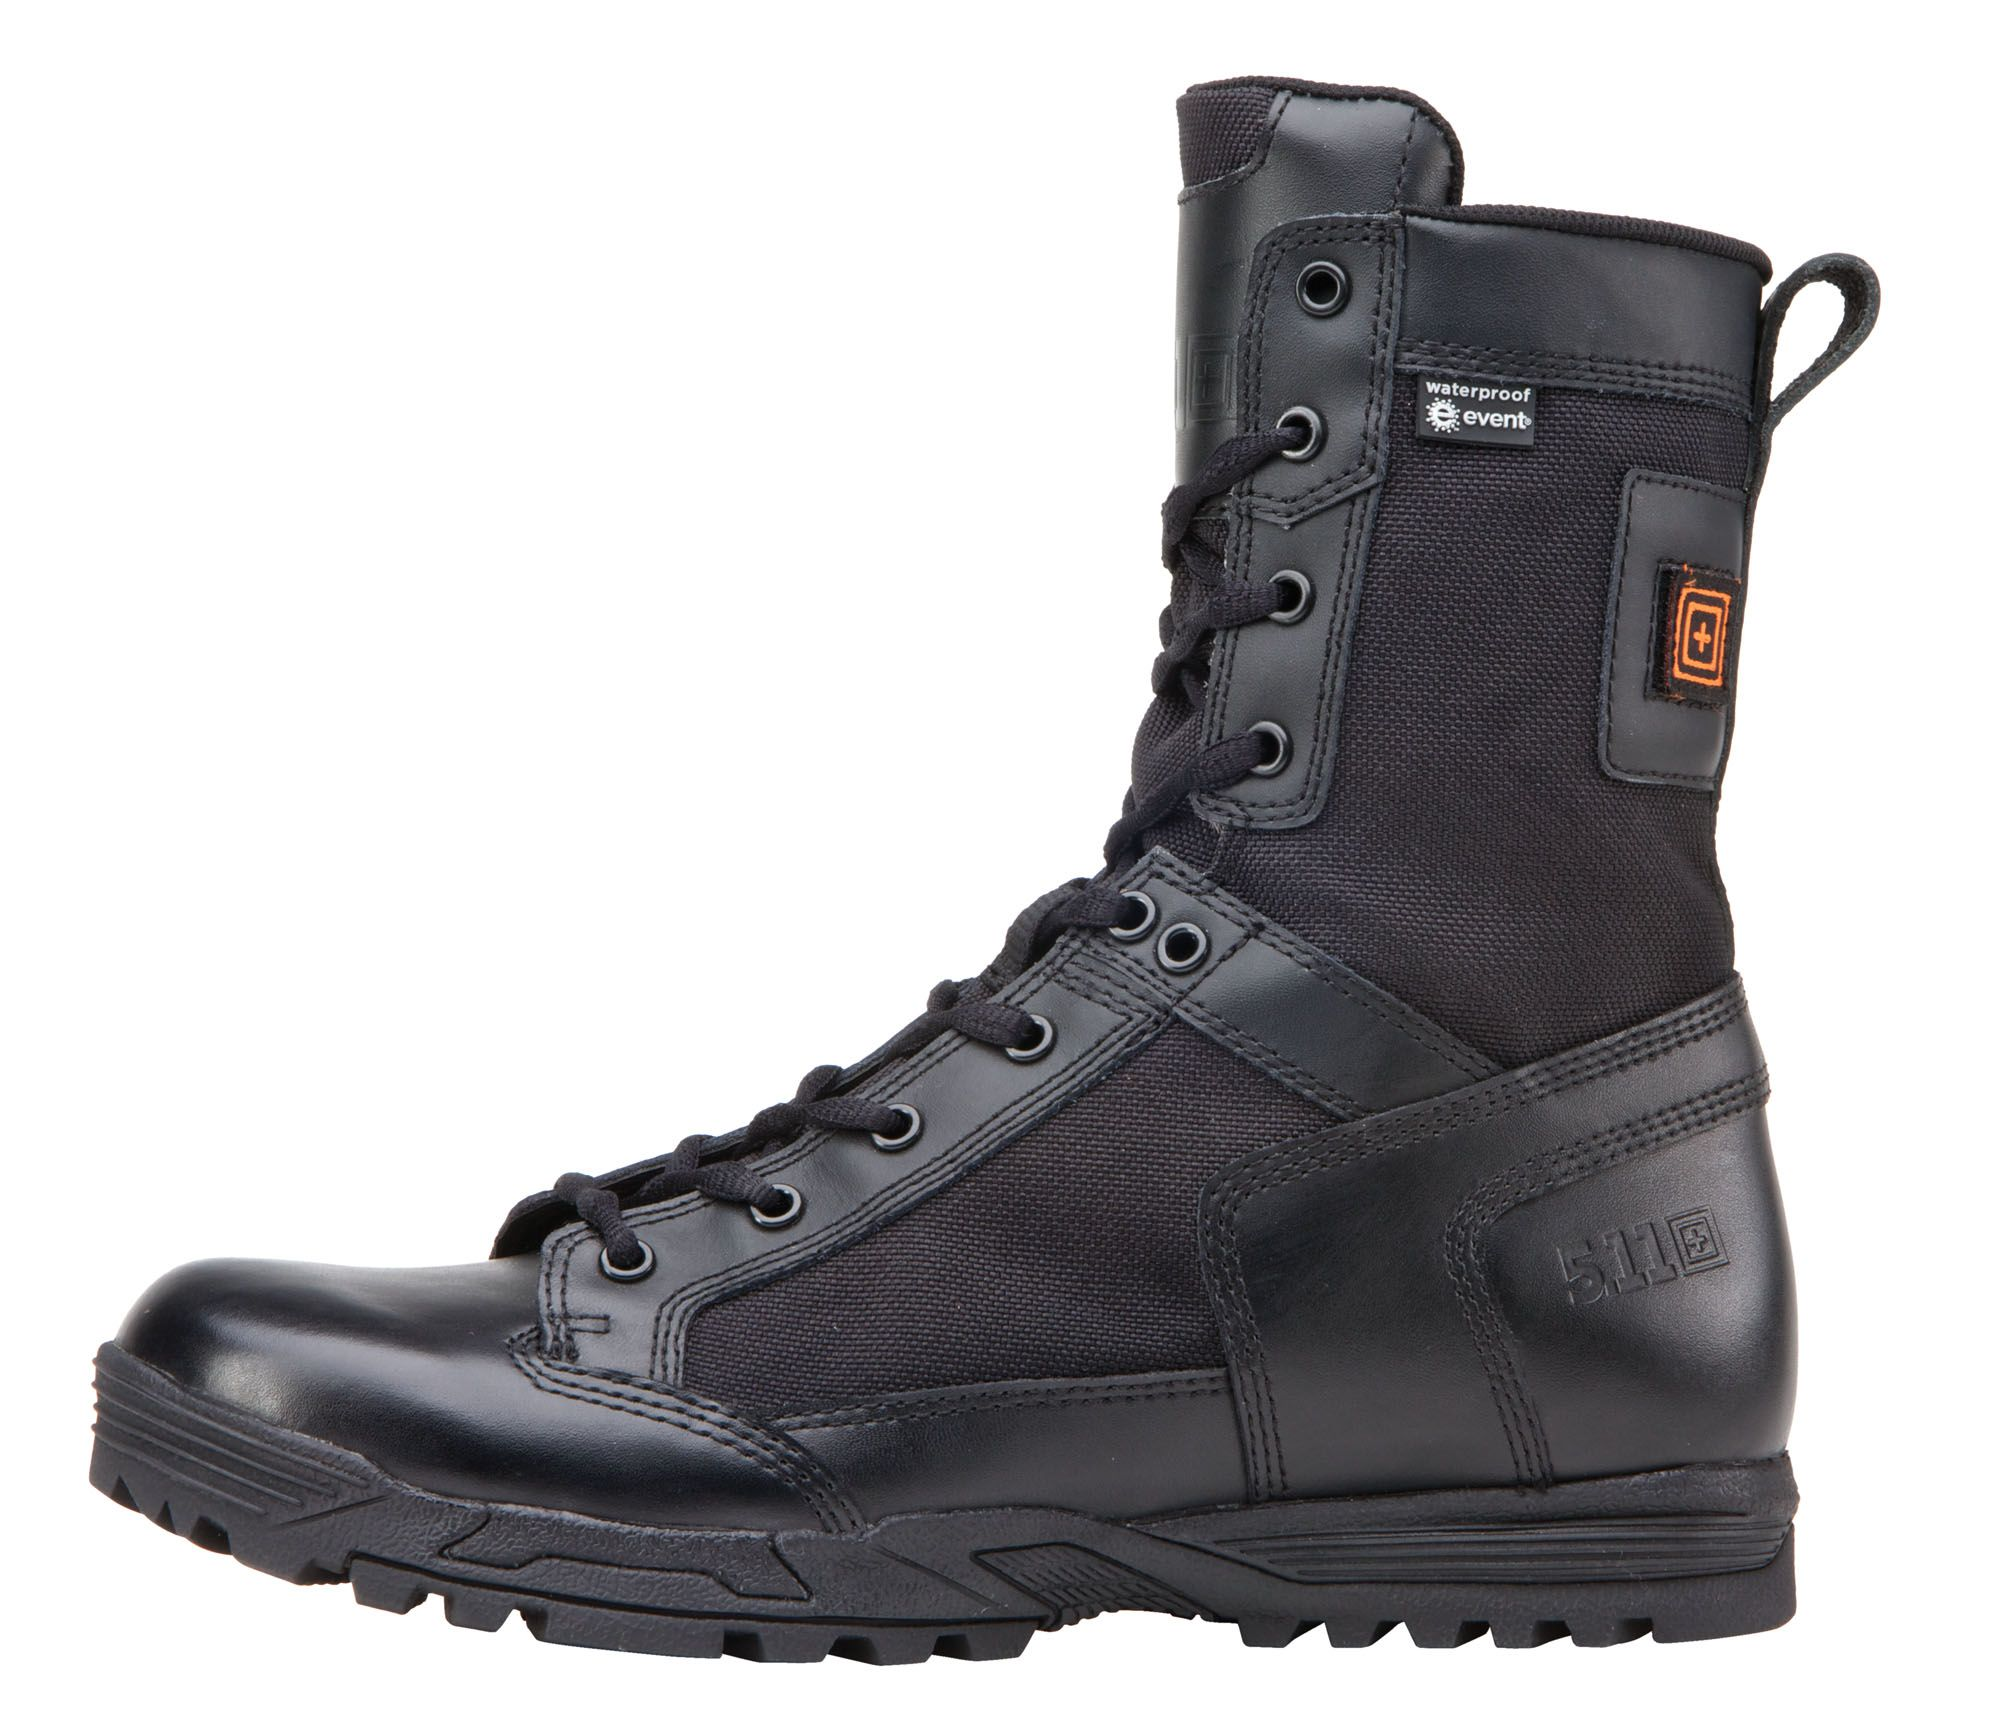 ab0c092f654 5.11 Tactical Skyweight Waterproof Side-zip Boots